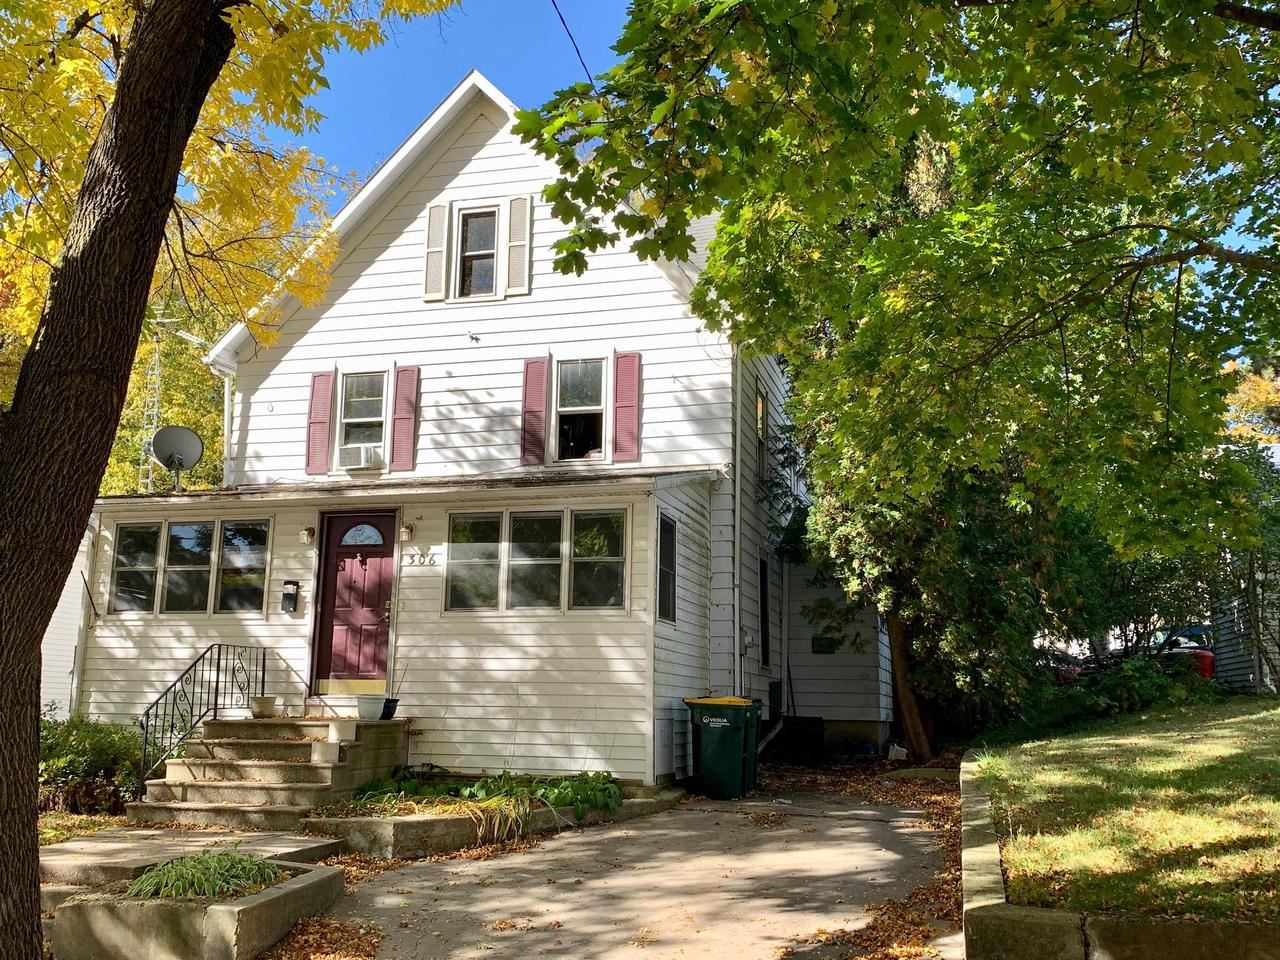 306 Grant St, Fort Atkinson, WI 53538 - #: 371855